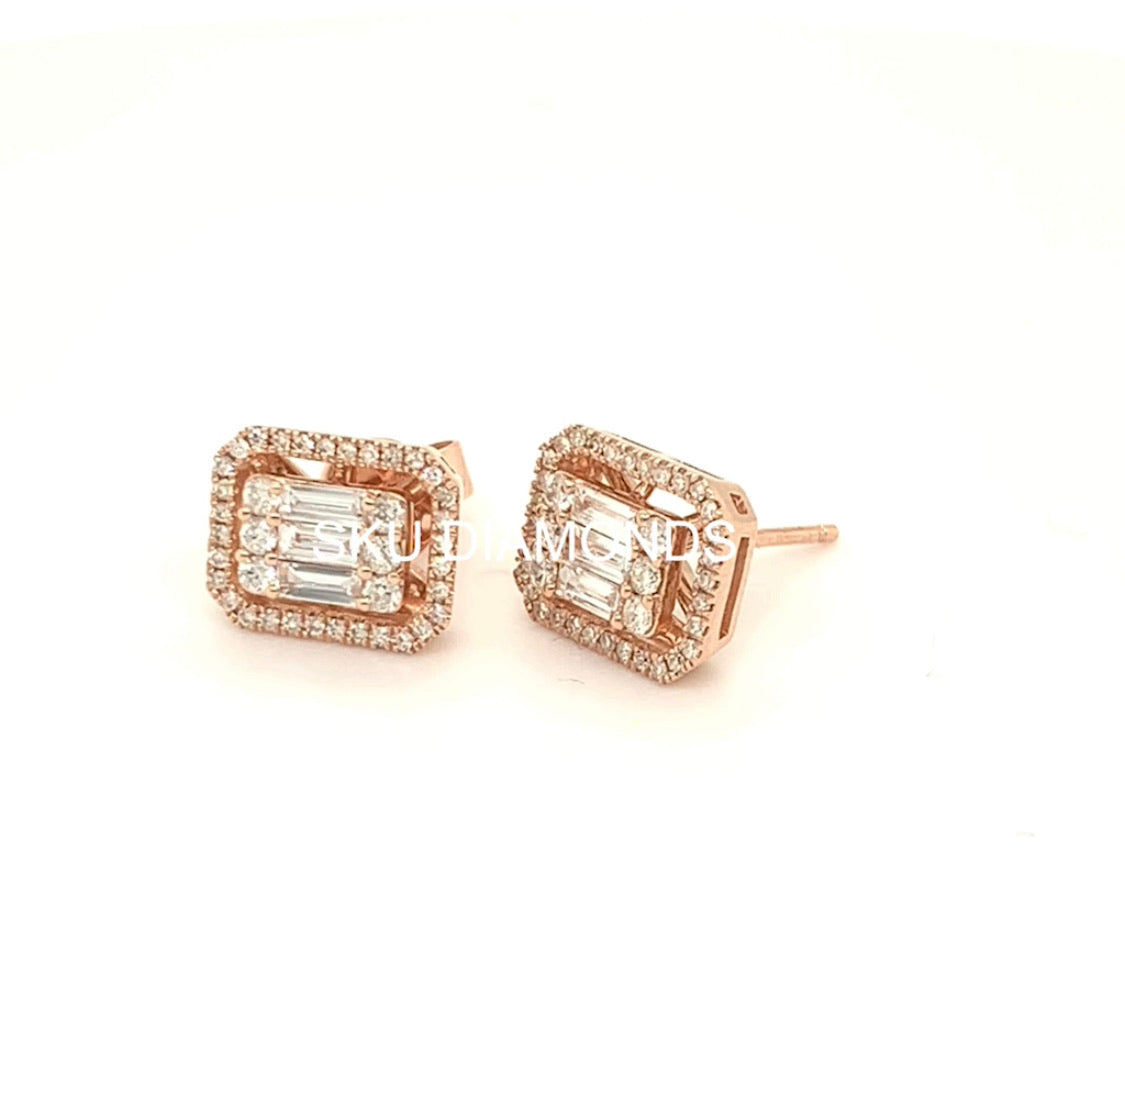 Emerald Shaped Halo Diamond Earrings